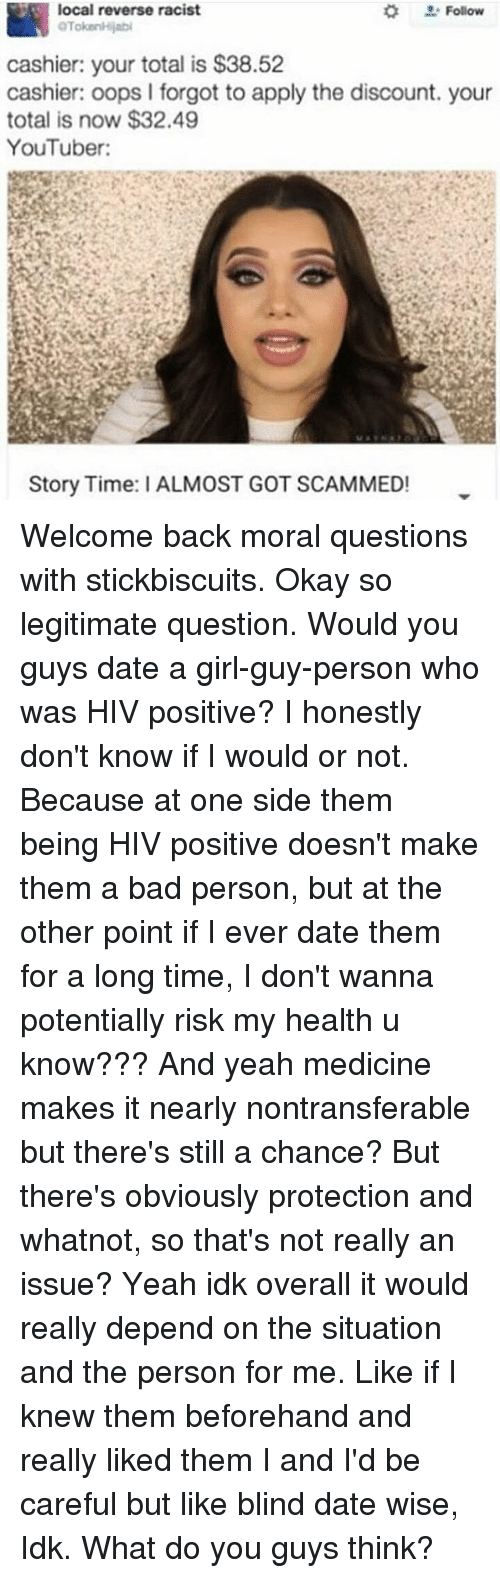 Hiv Positive: local reverse racist  OTokoonilijabi  cashier: your total is $38.52  cashier: oops I forgot to apply the discount. your  total is now $32.49  YouTuber:  Story Time: ALMOST GOT SCAMMED! Welcome back moral questions with stickbiscuits. Okay so legitimate question. Would you guys date a girl-guy-person who was HIV positive? I honestly don't know if I would or not. Because at one side them being HIV positive doesn't make them a bad person, but at the other point if I ever date them for a long time, I don't wanna potentially risk my health u know??? And yeah medicine makes it nearly nontransferable but there's still a chance? But there's obviously protection and whatnot, so that's not really an issue? Yeah idk overall it would really depend on the situation and the person for me. Like if I knew them beforehand and really liked them I and I'd be careful but like blind date wise, Idk. What do you guys think?